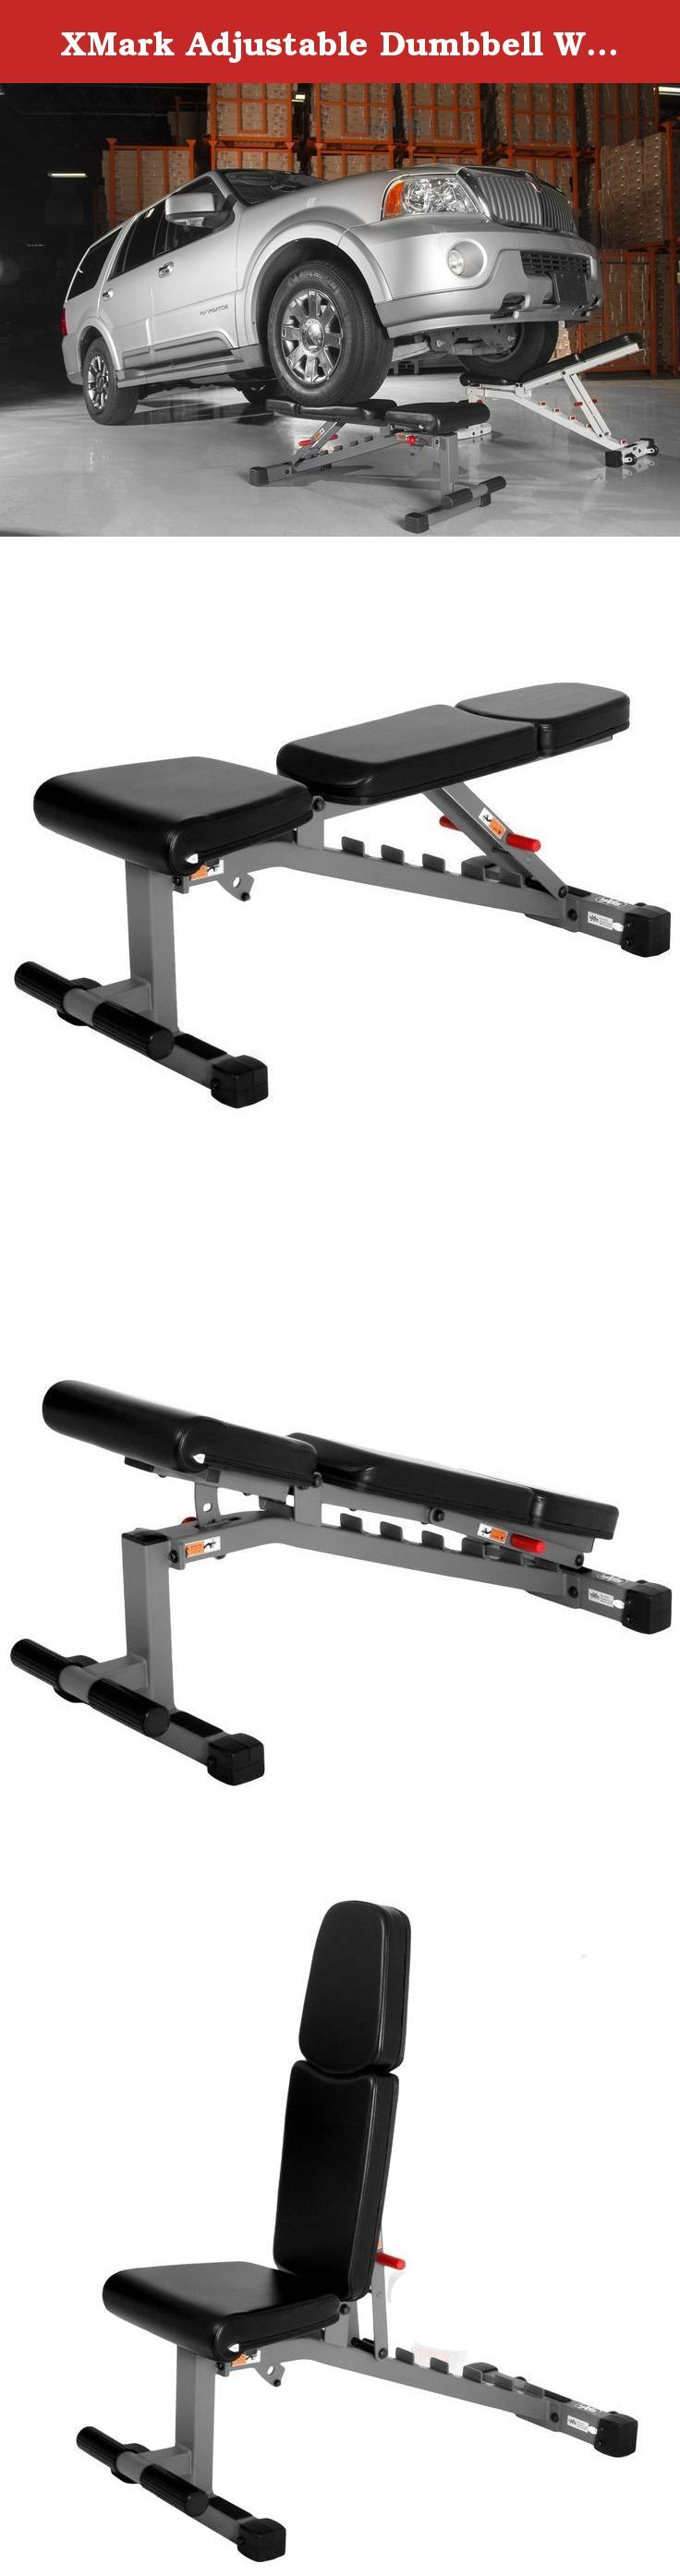 XMark Adjustable Dumbbell Weight Bench XM 7630. XMark Adjustable FID  Dumbbell Weight Bench XM